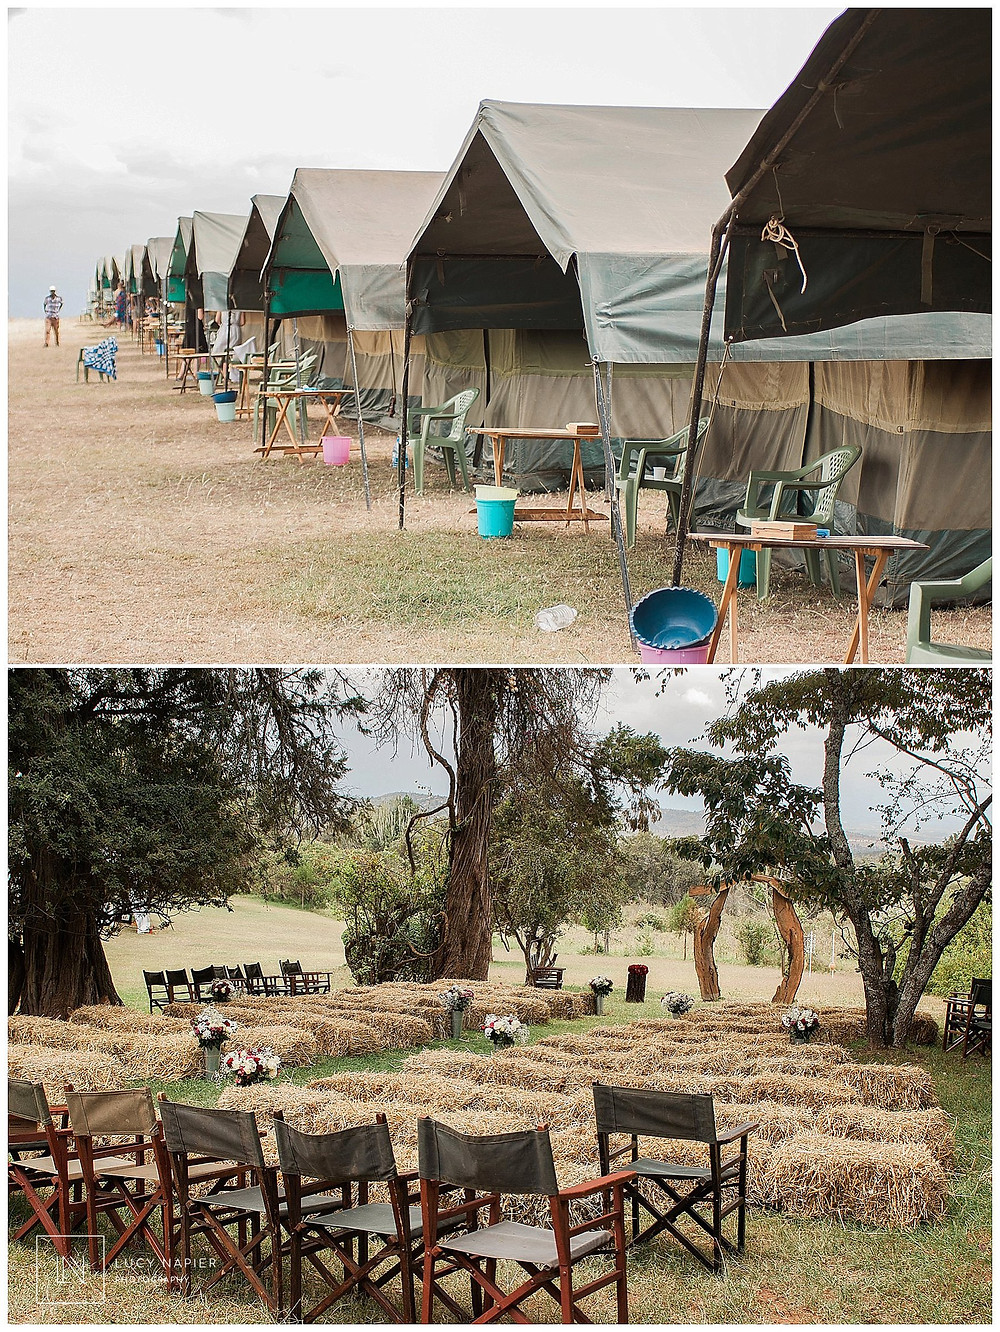 tents lined up in Kenya